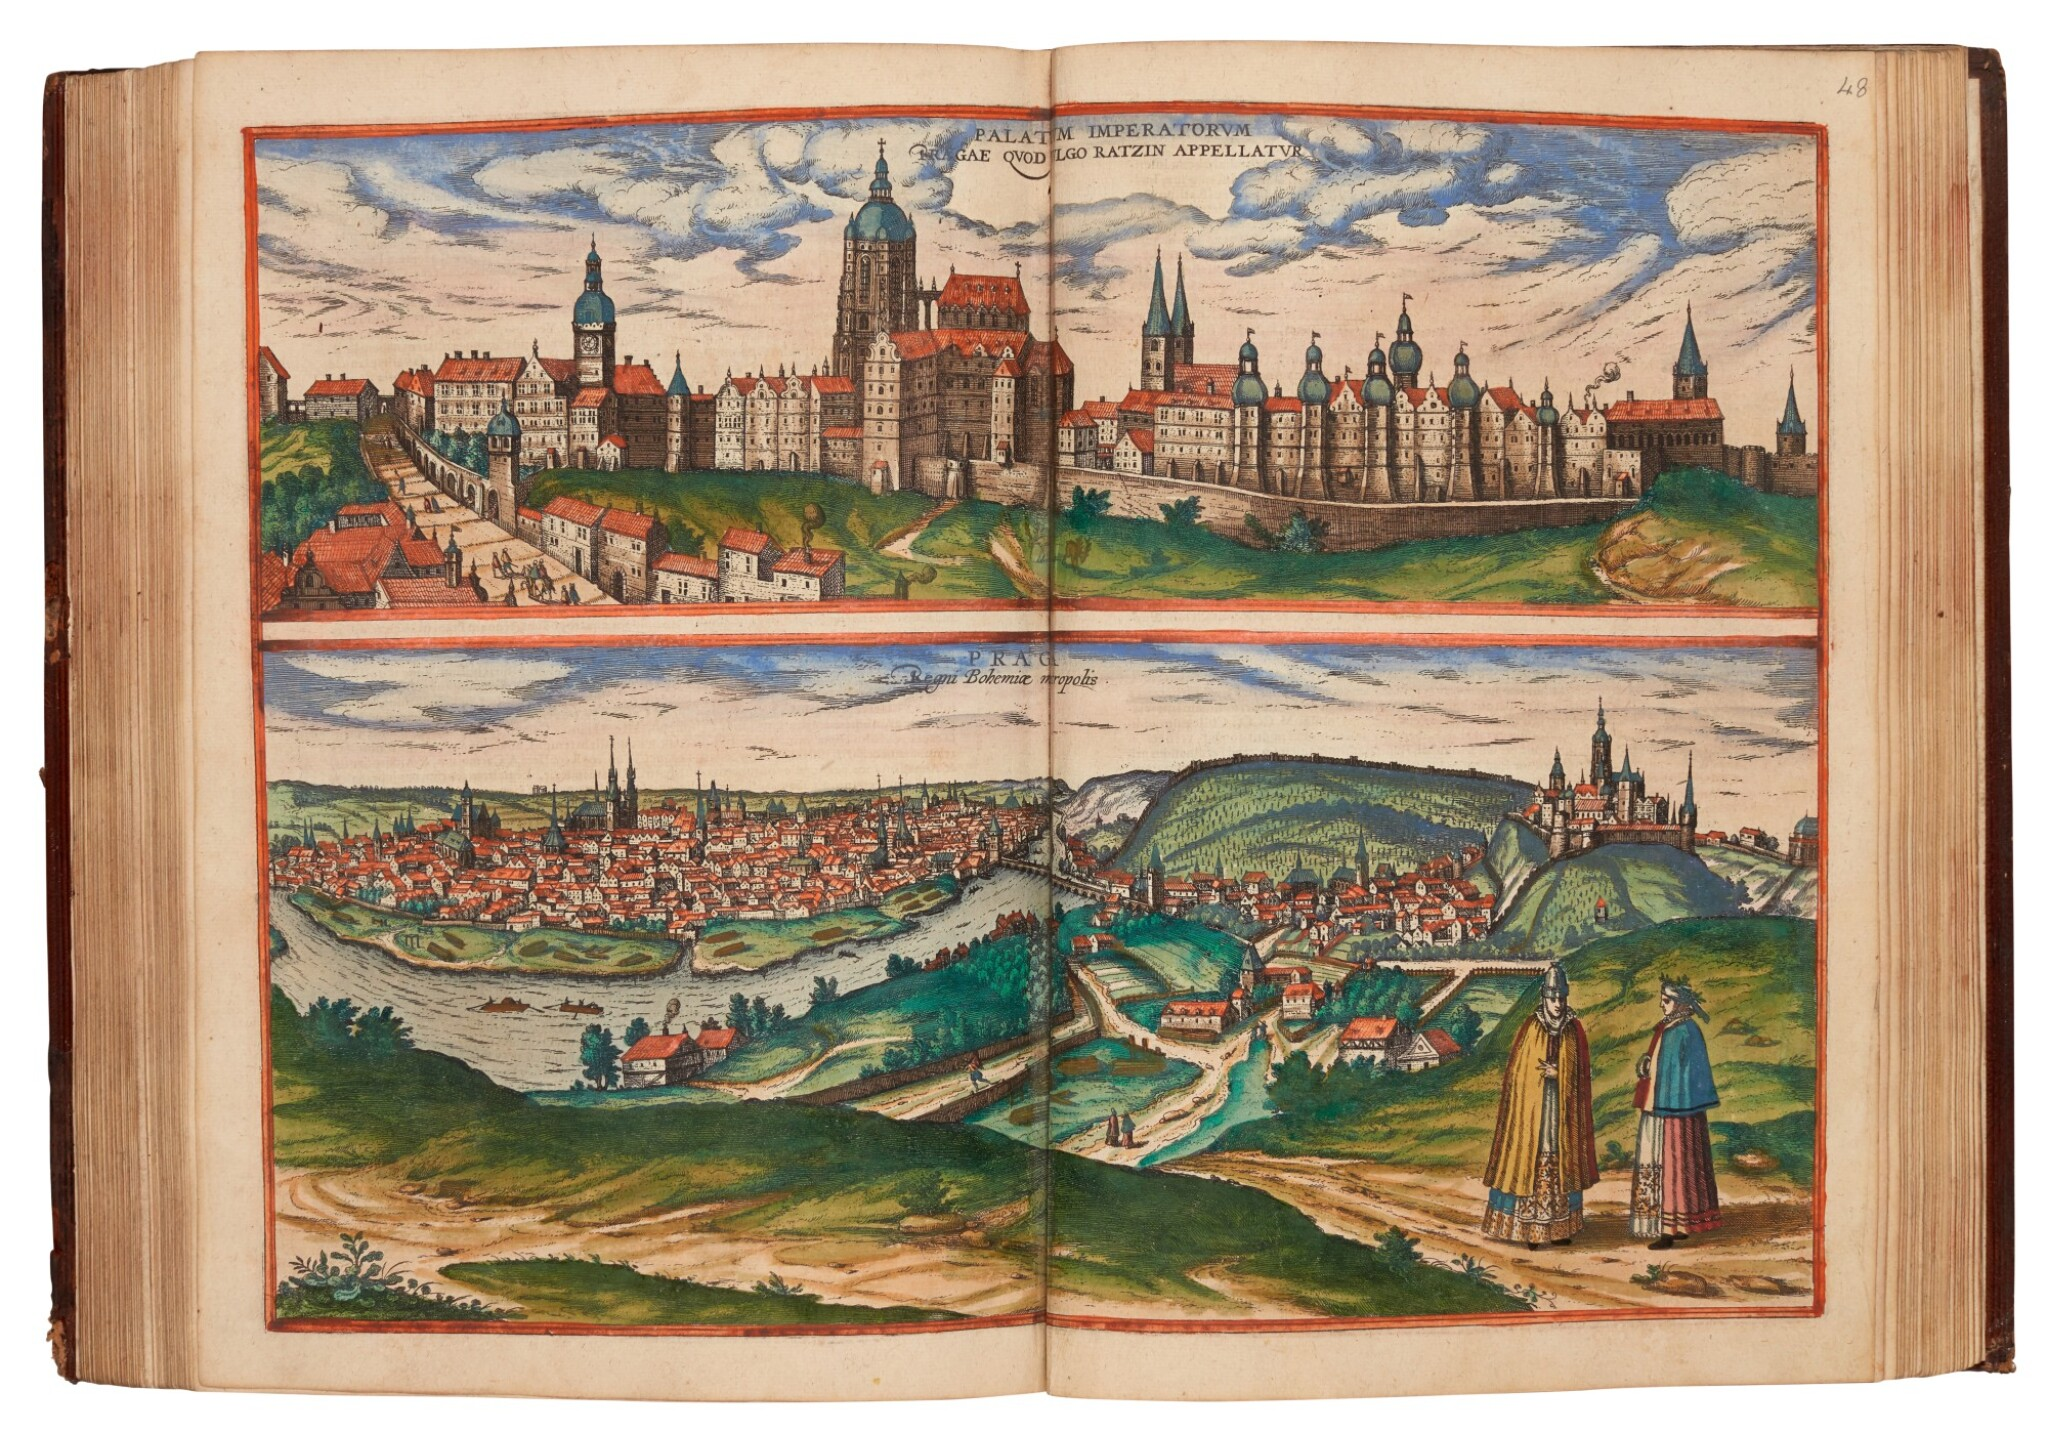 View full screen - View 1 of Lot 41. Georg Braun und Franz Hogenberg | Civitates orbis terrarum. Cologne, 1597-c.1606, 5 volumes, hand-coloured, calf.